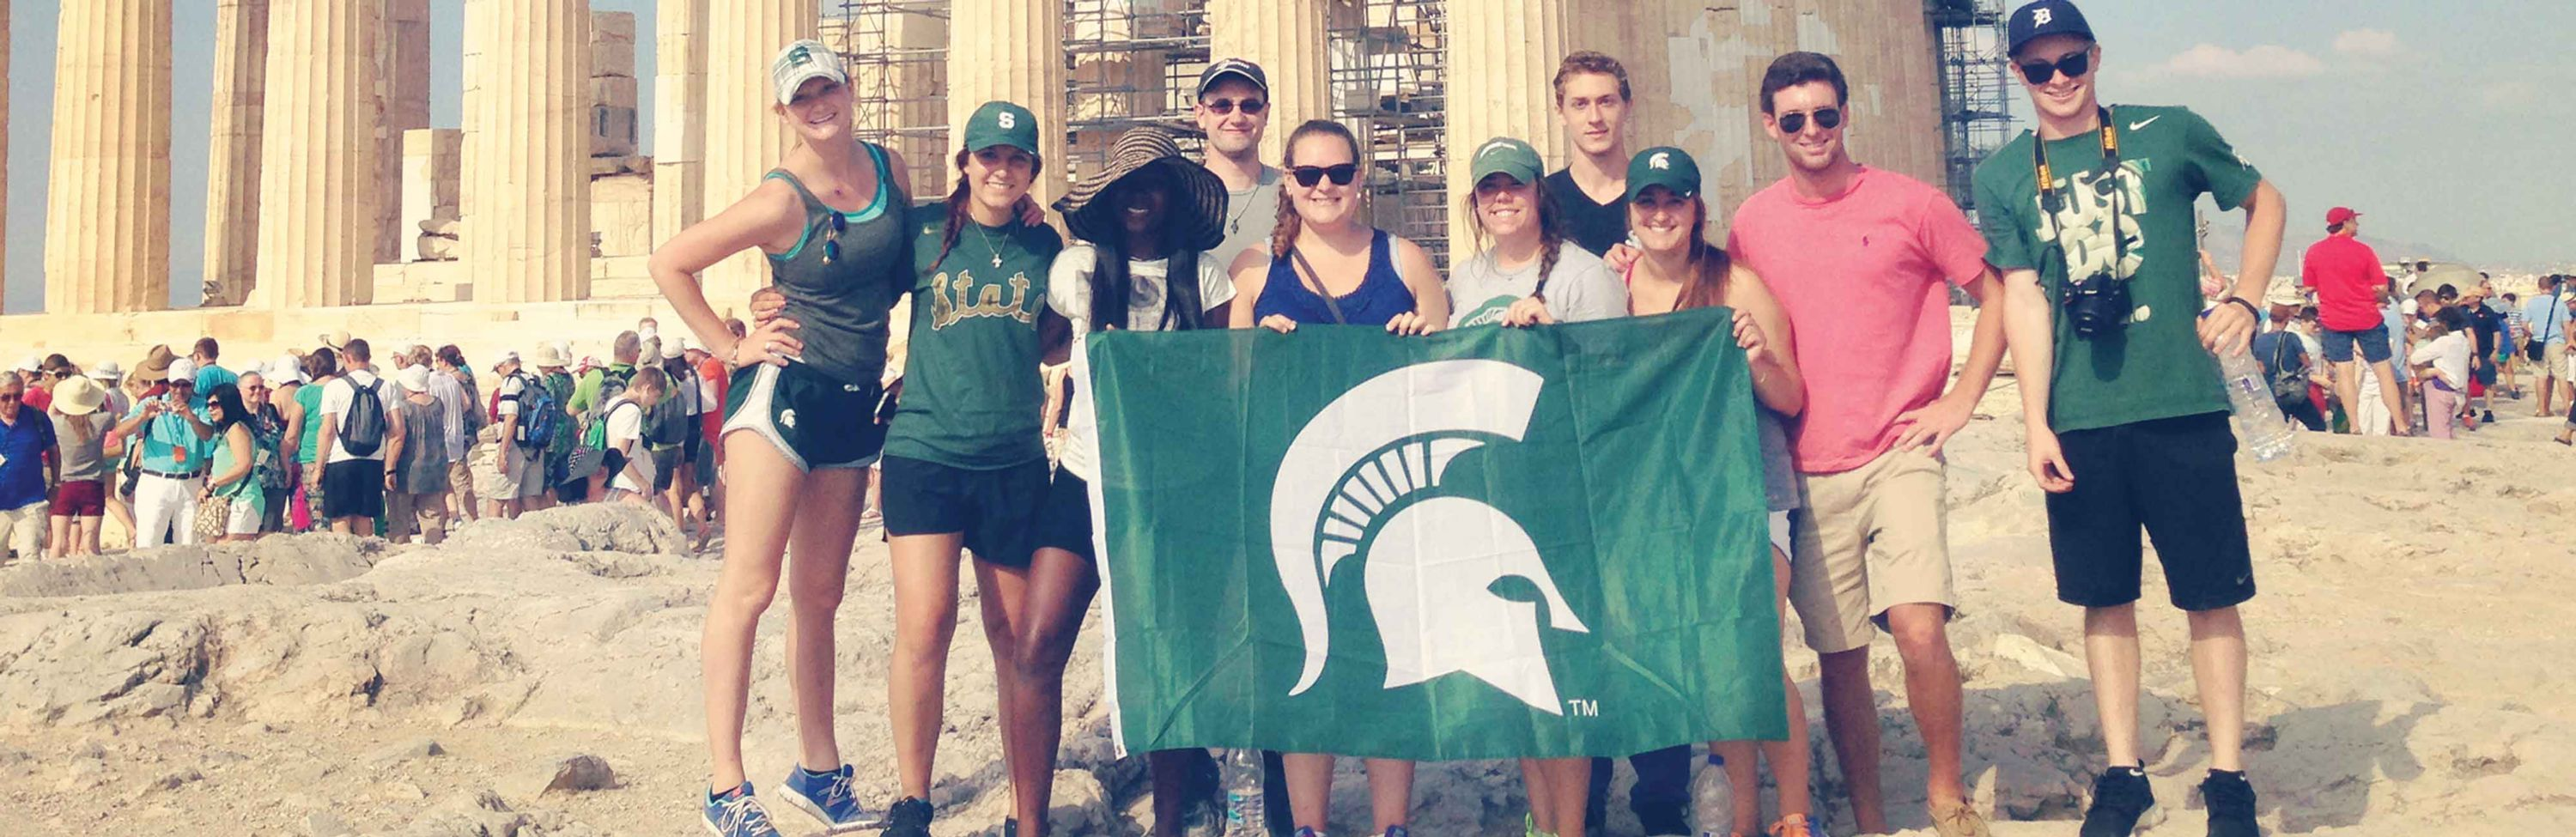 students holding an MSU flag